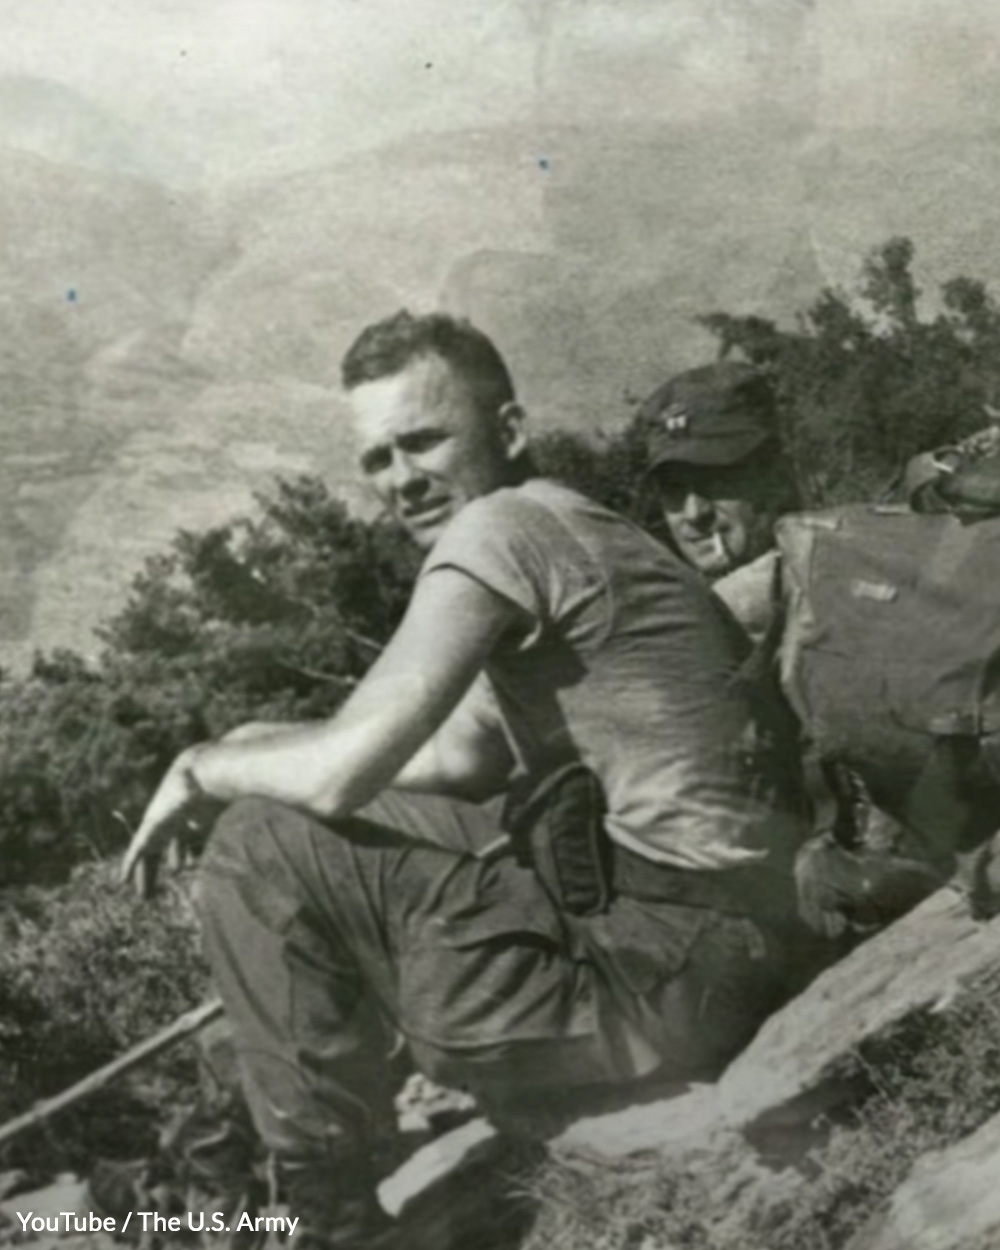 Puckett, Jr. earned many medals for his actions in war.